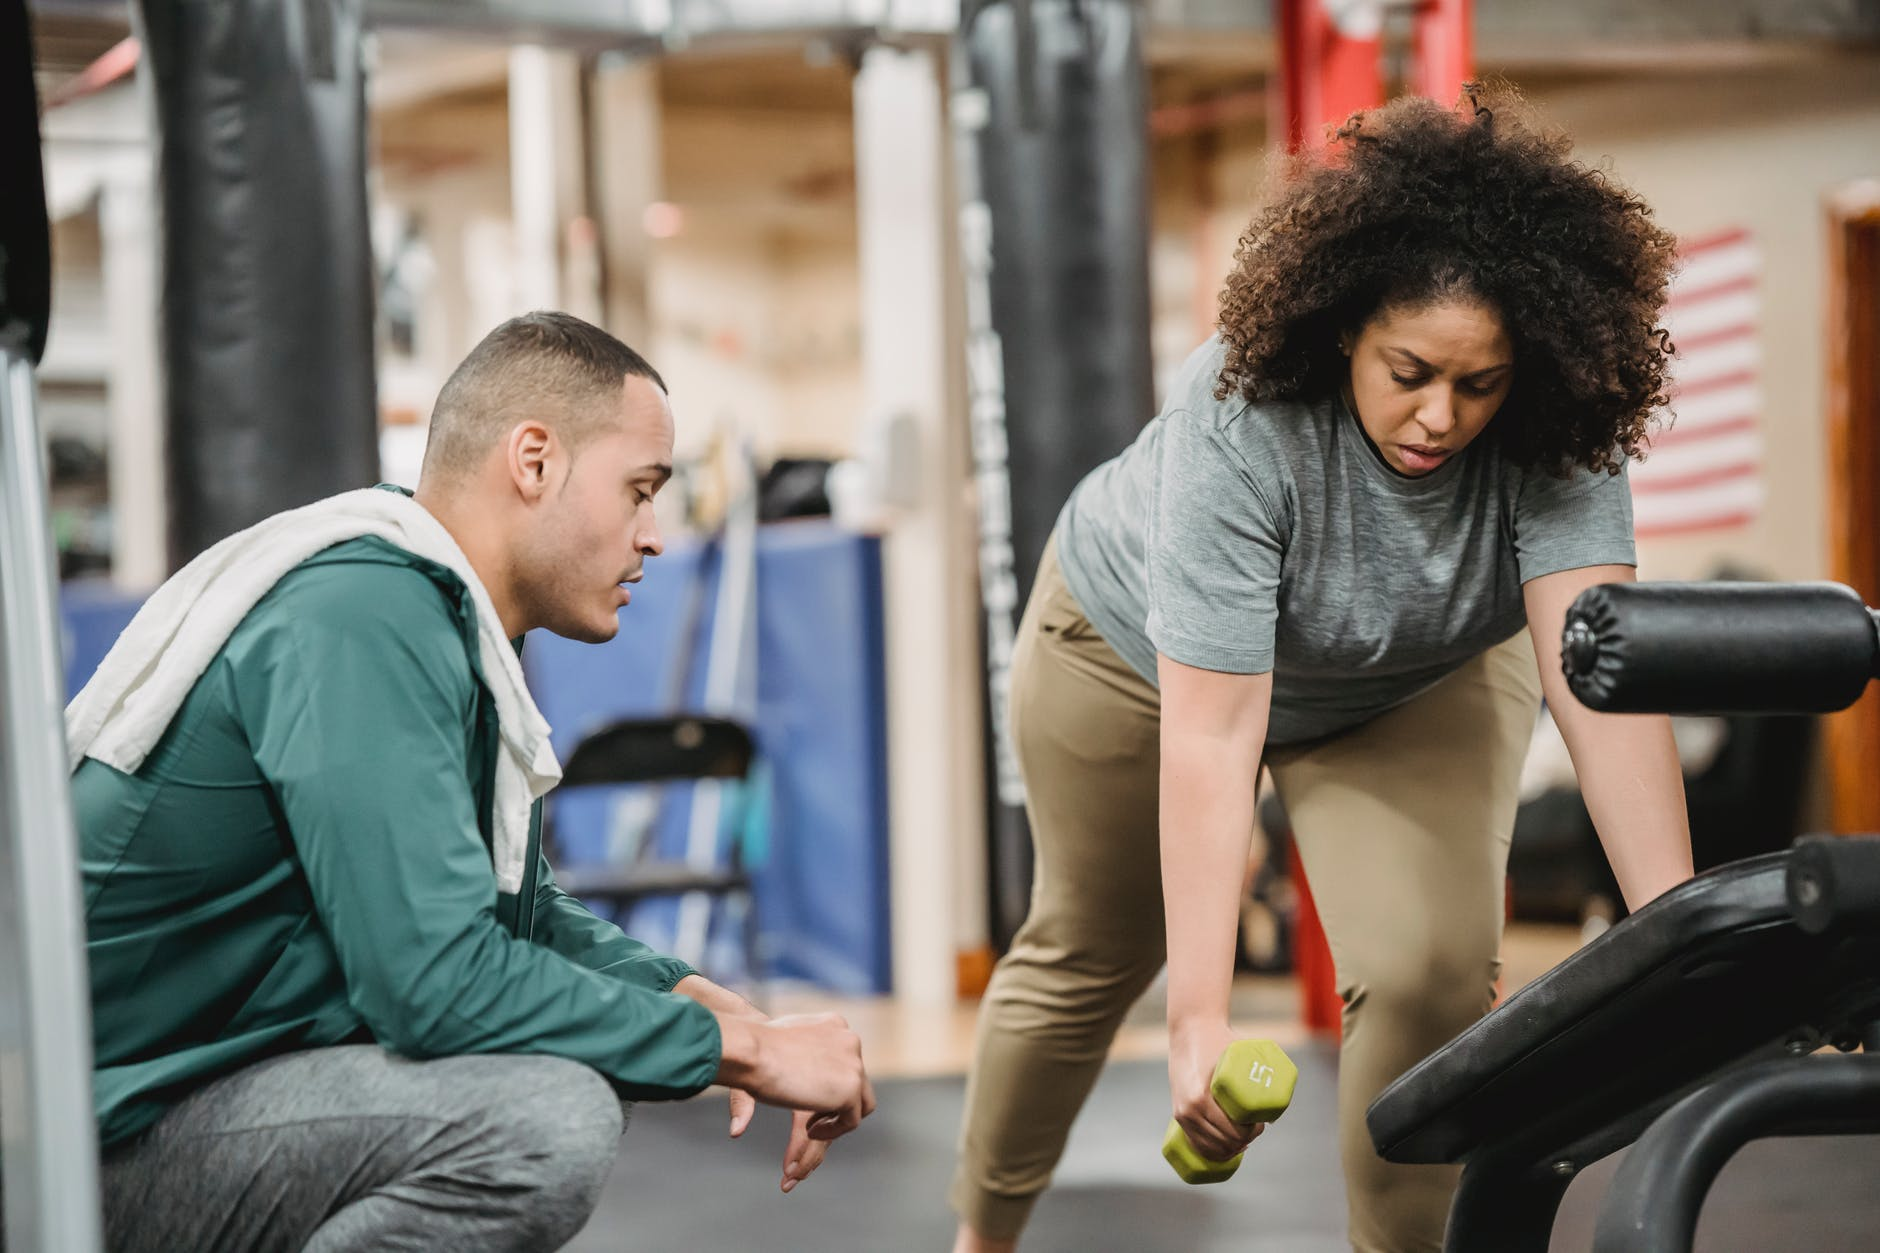 Starting a Gym/Fitness Center - Best business ideas in nigeria for 2021